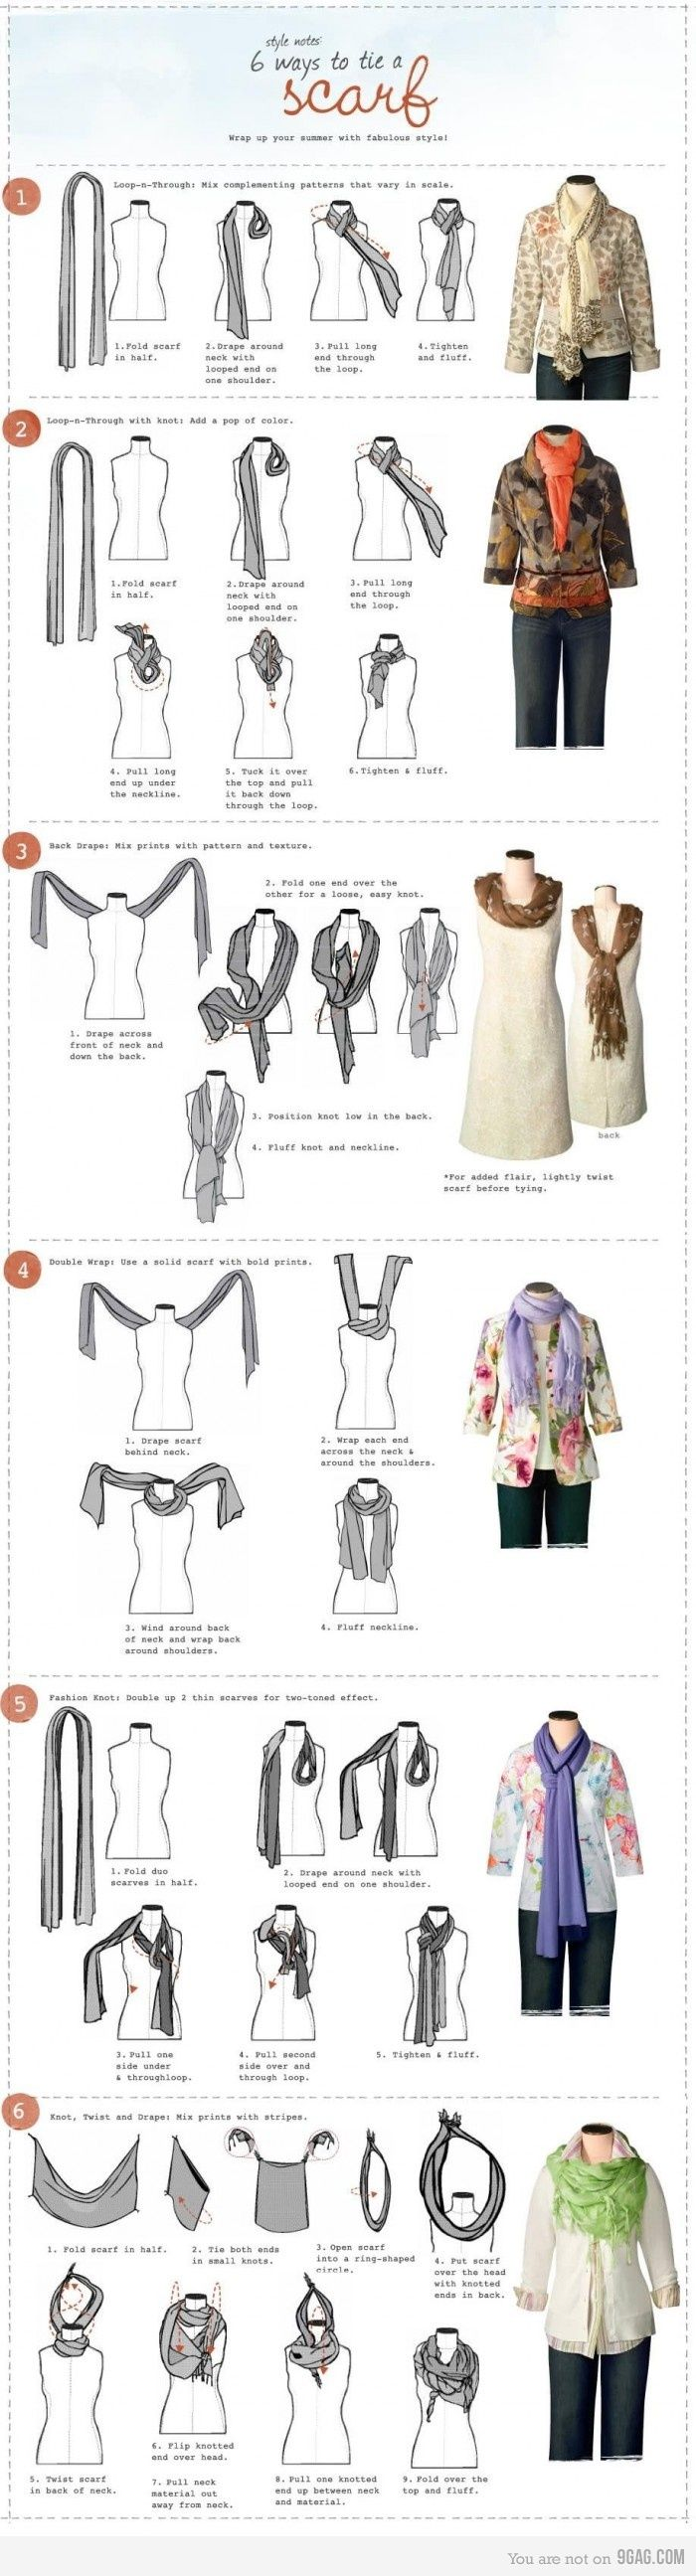 Scarf Tying Guide... love wearing scarves in the fall and winter.